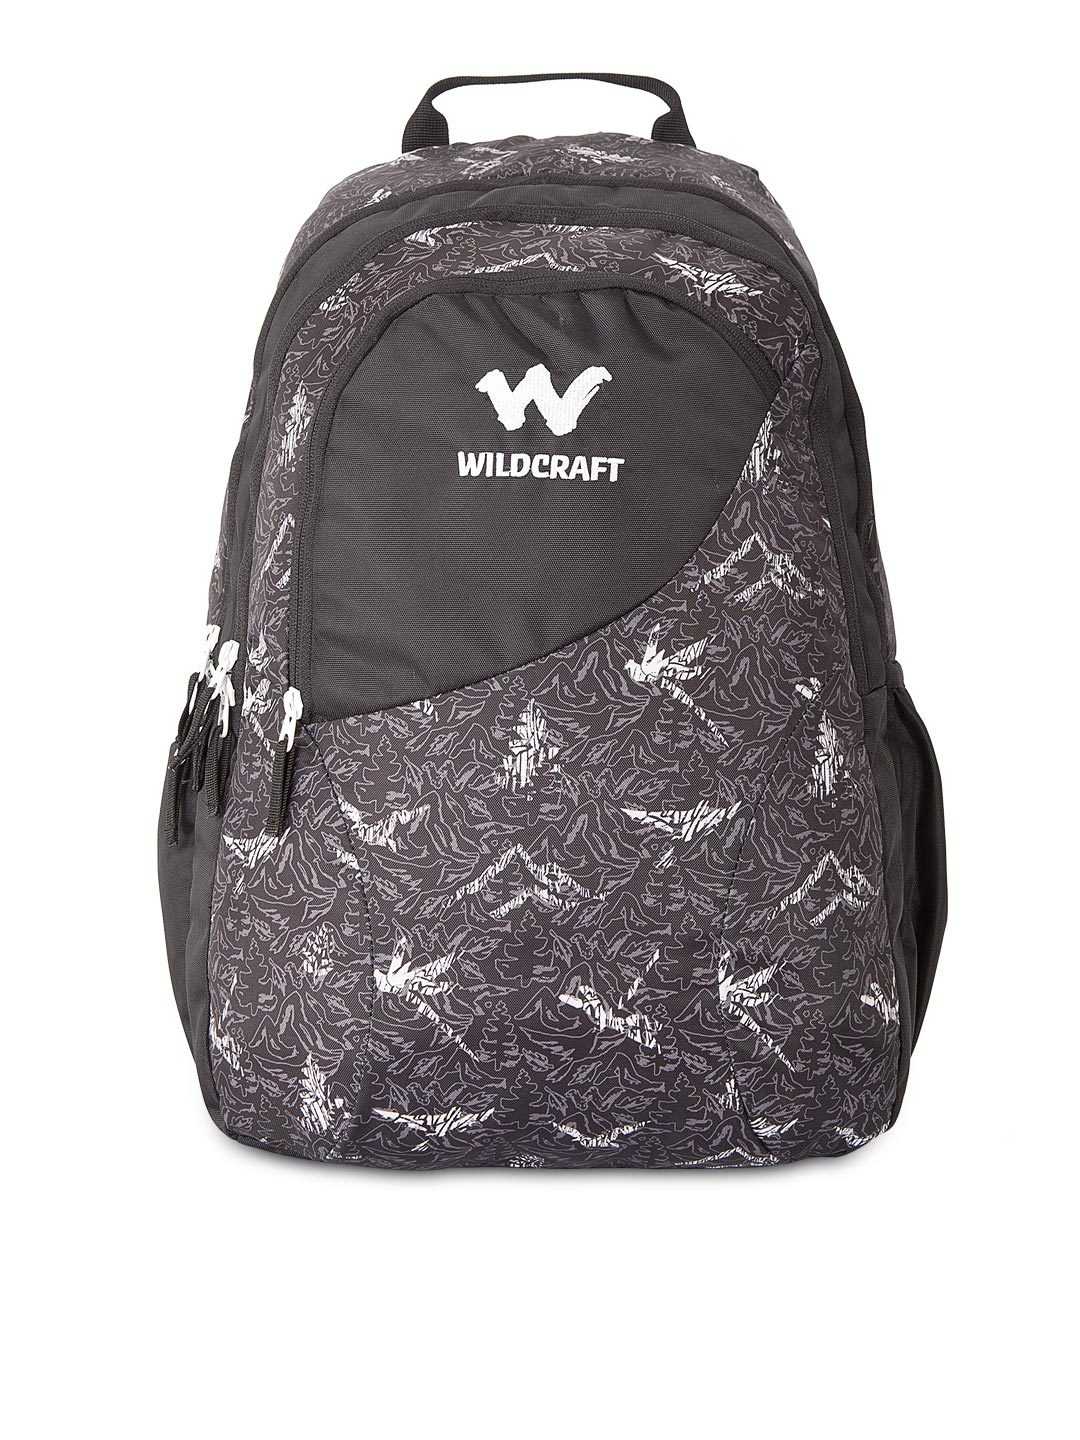 Wildcraft Black Grey Backpacks - Buy Wildcraft Black Grey Backpacks online  in India 94043aee3869a